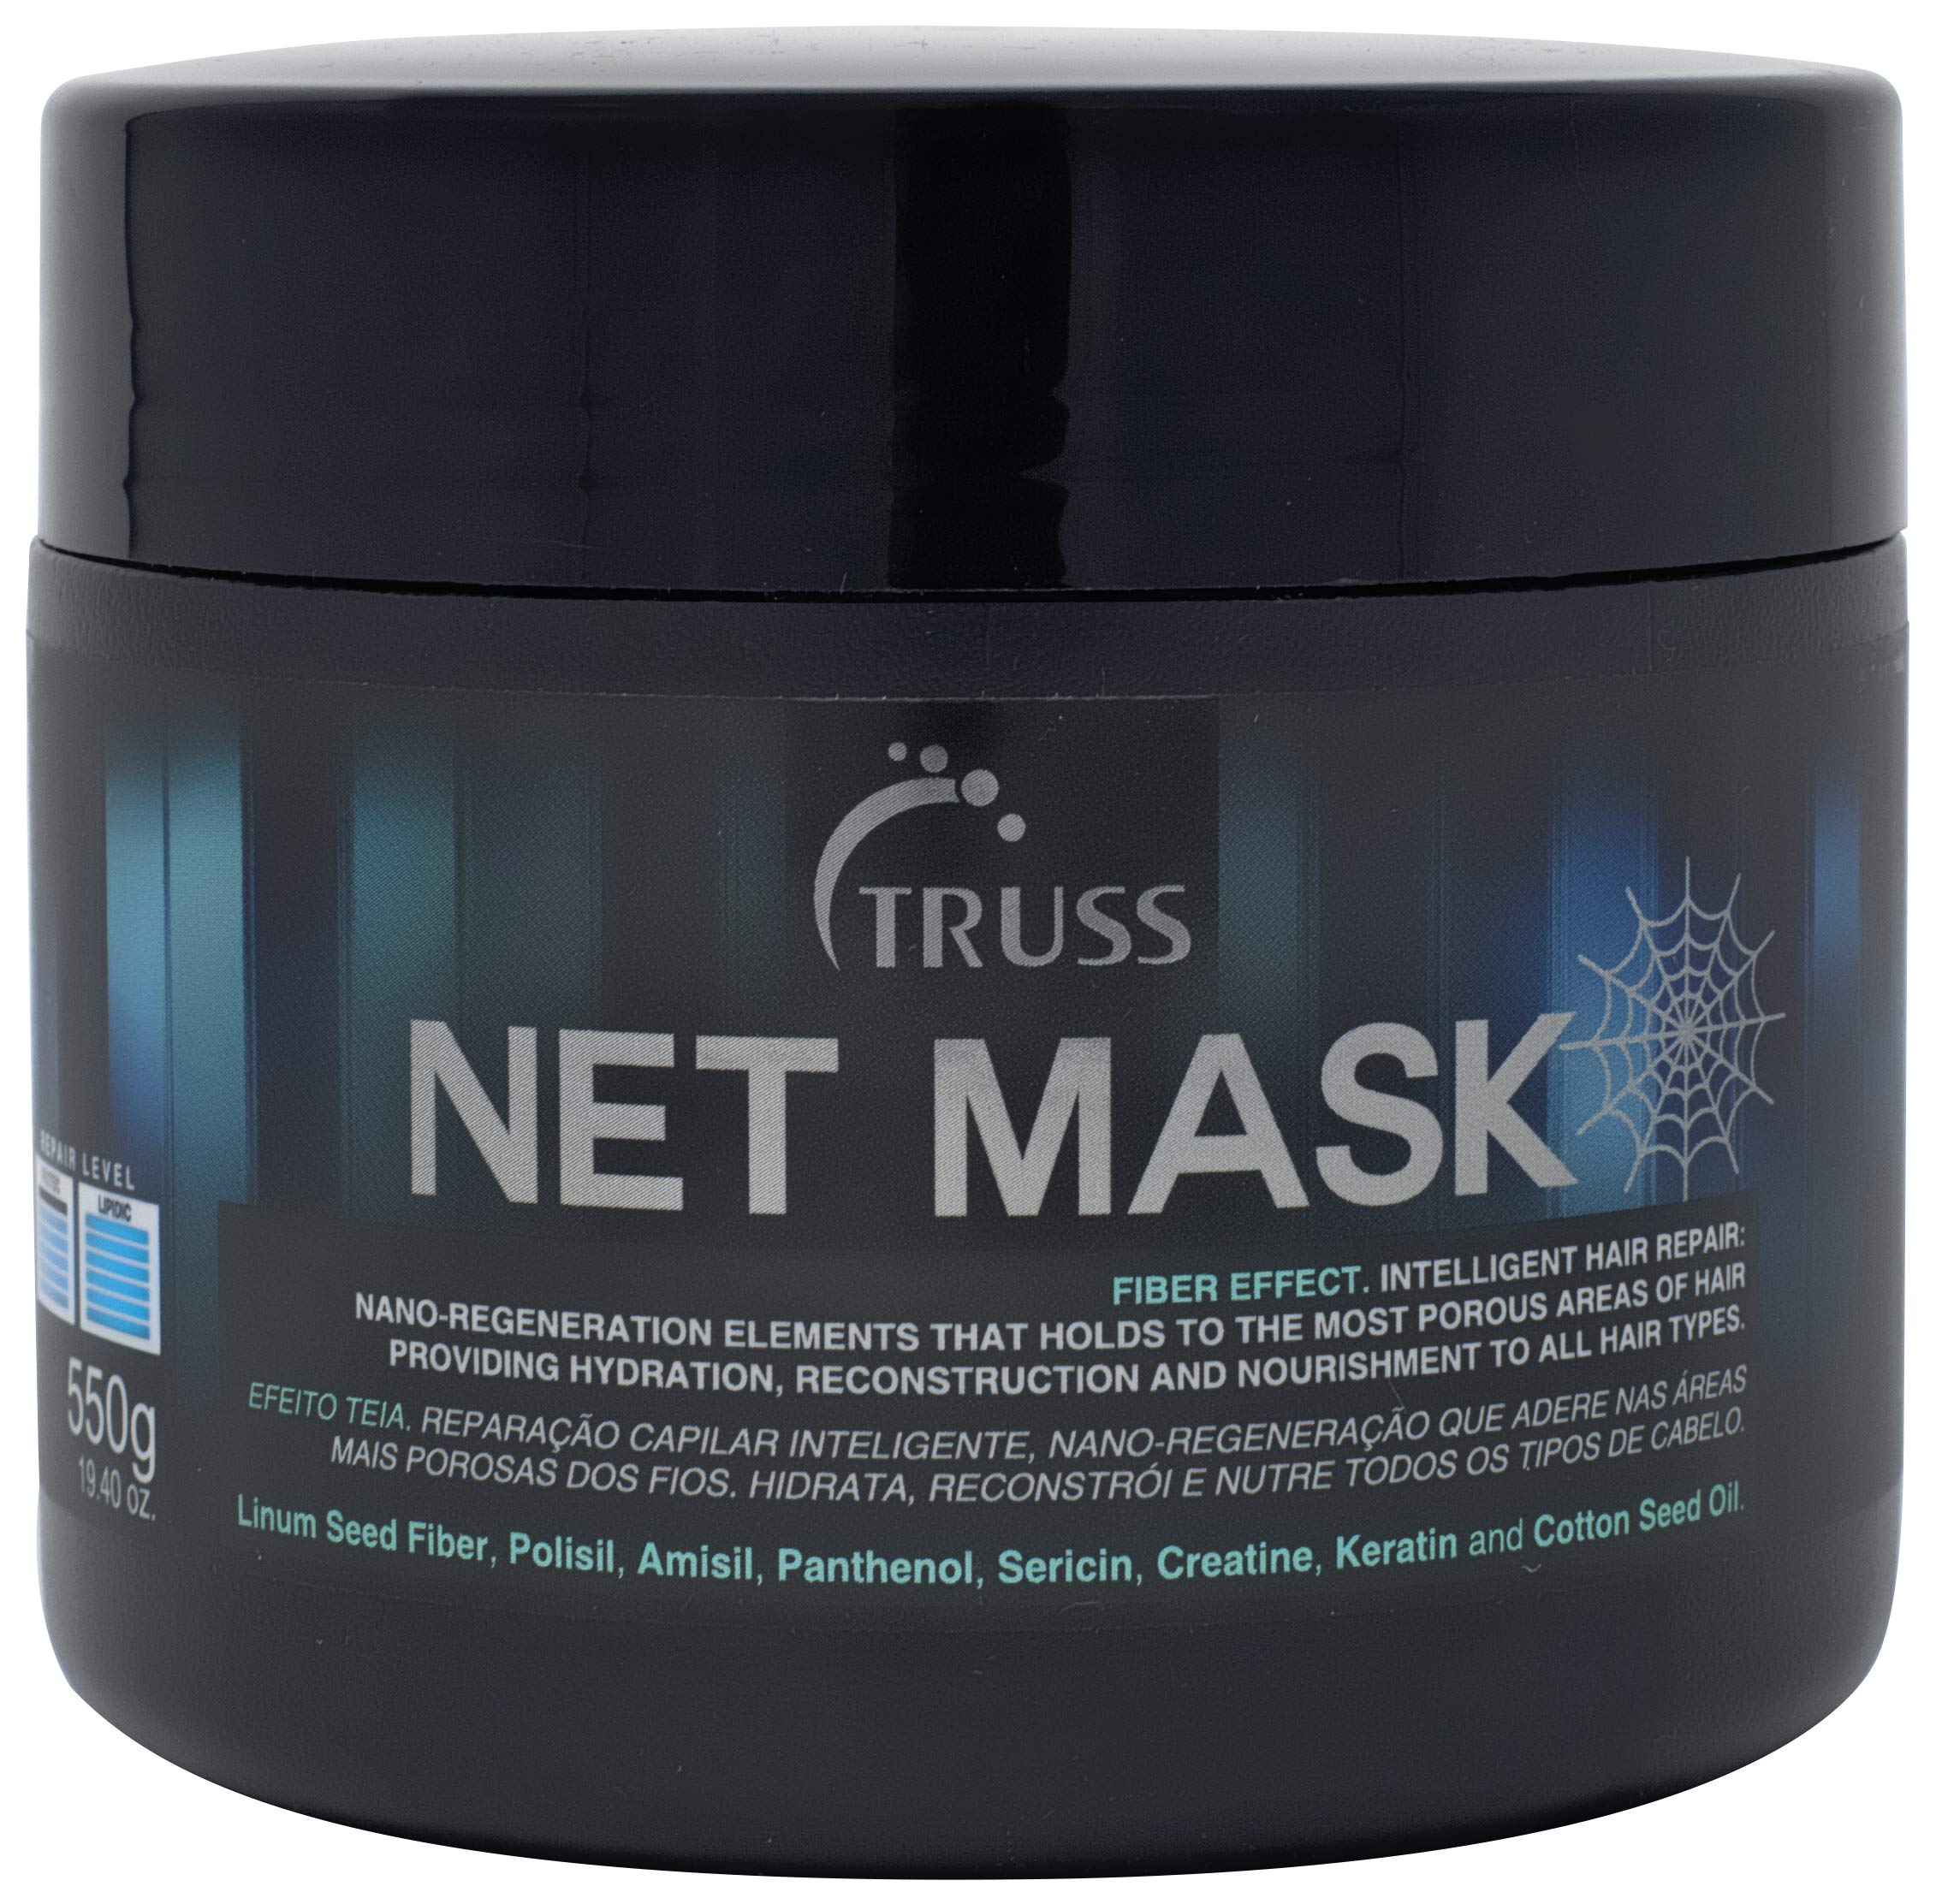 TRUSS Net Mask - Intensive Repair Mask for Curly Hair & All Other Hair Types -